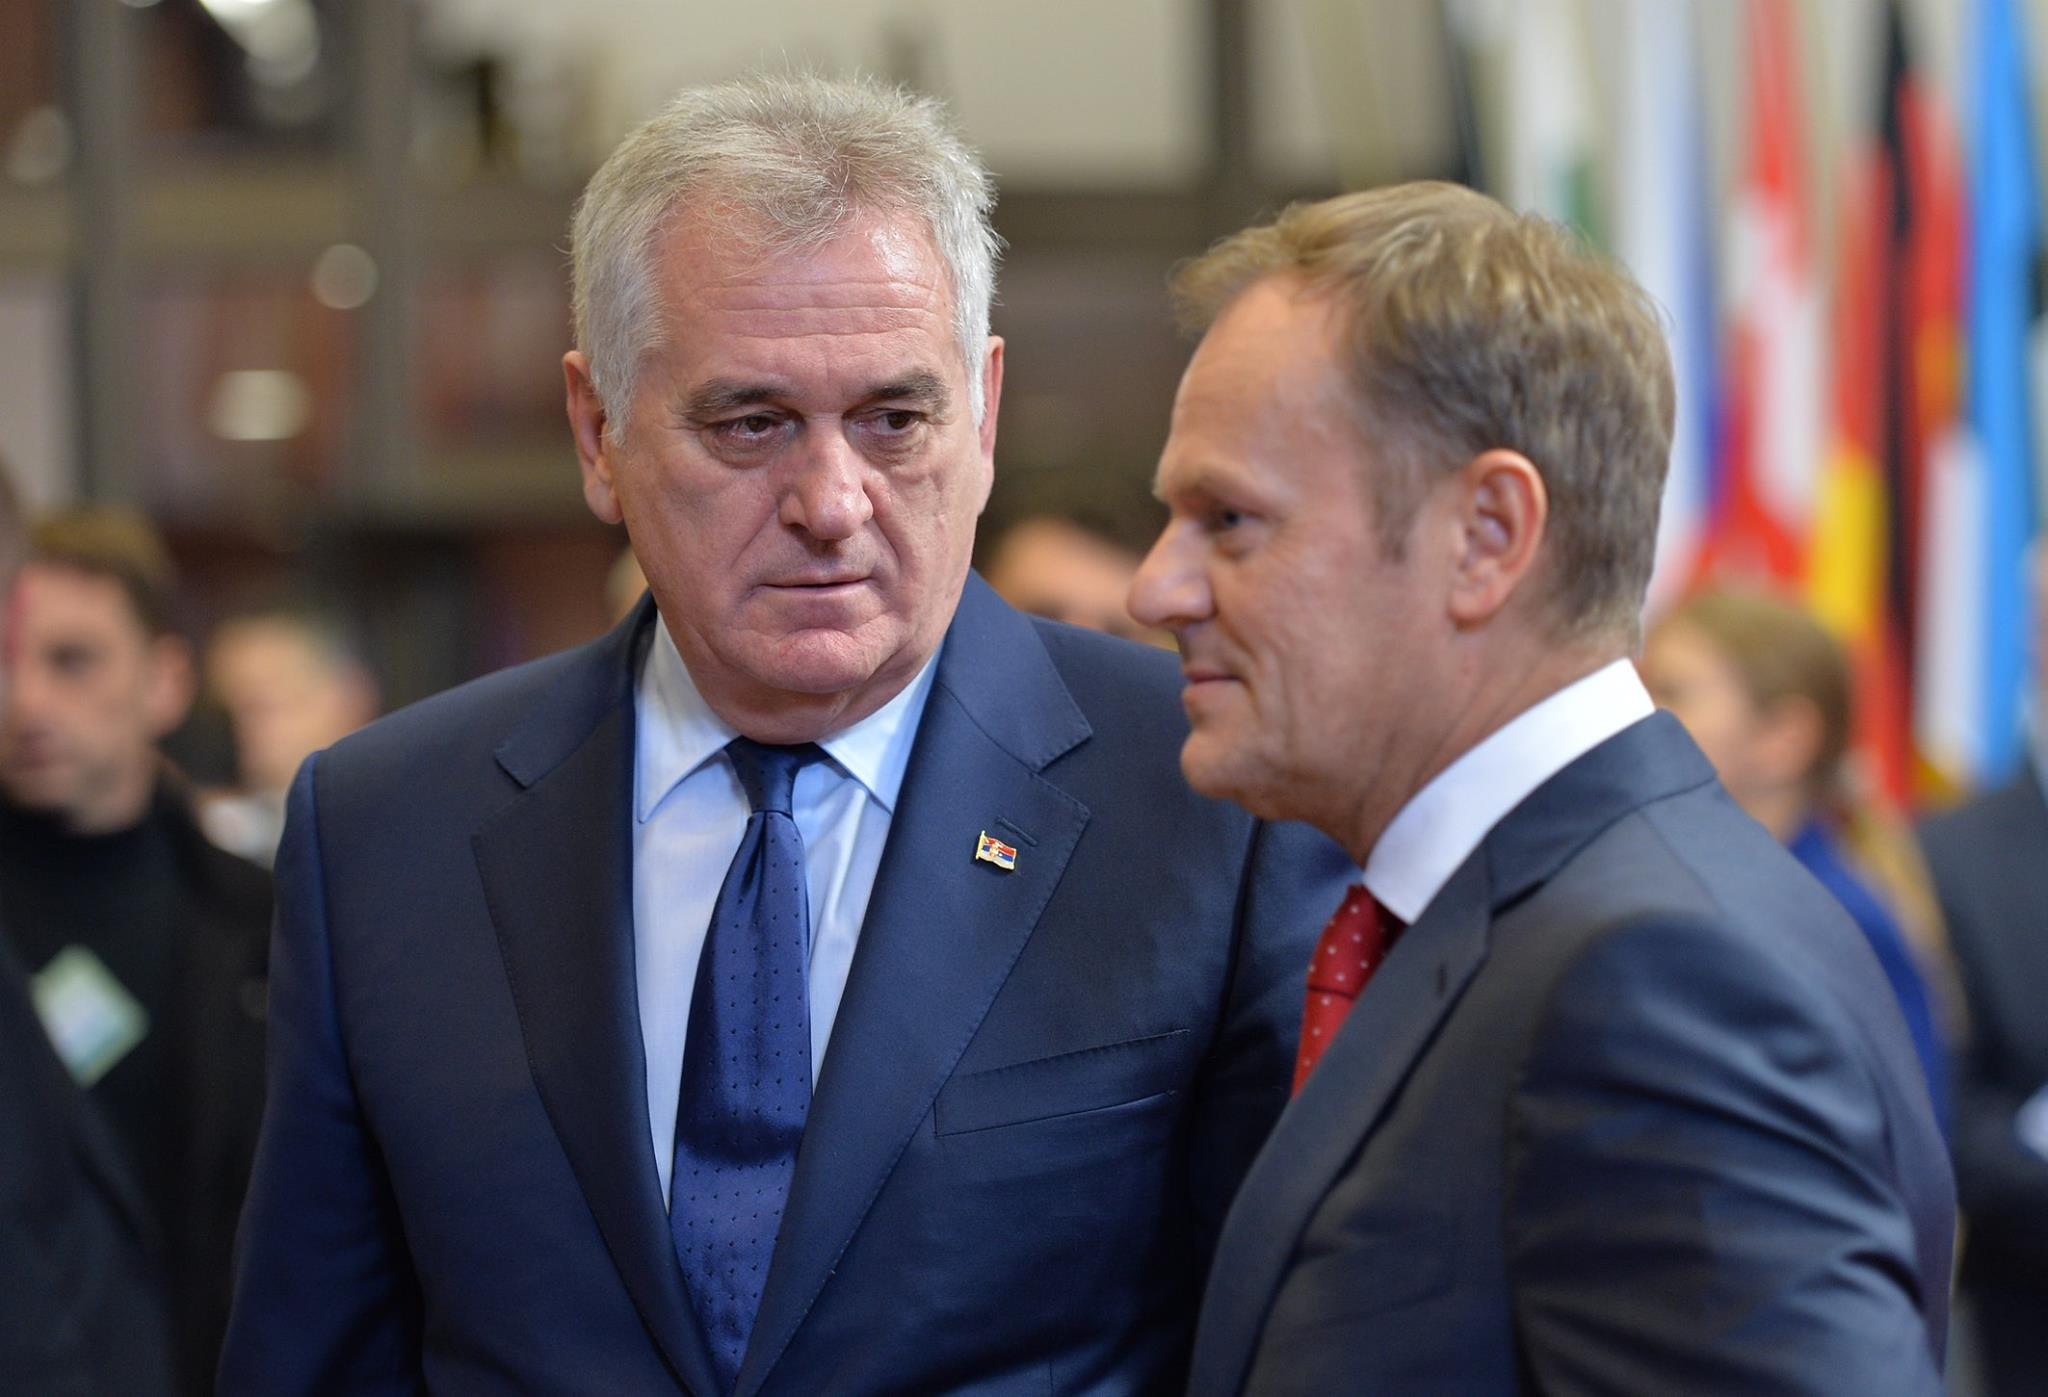 Serbian president Tomislav Nikolić met with European Council president Donald Tusk in December as part of ongoing EU accession negotiations. (Facebook / Aydemir Dursun)